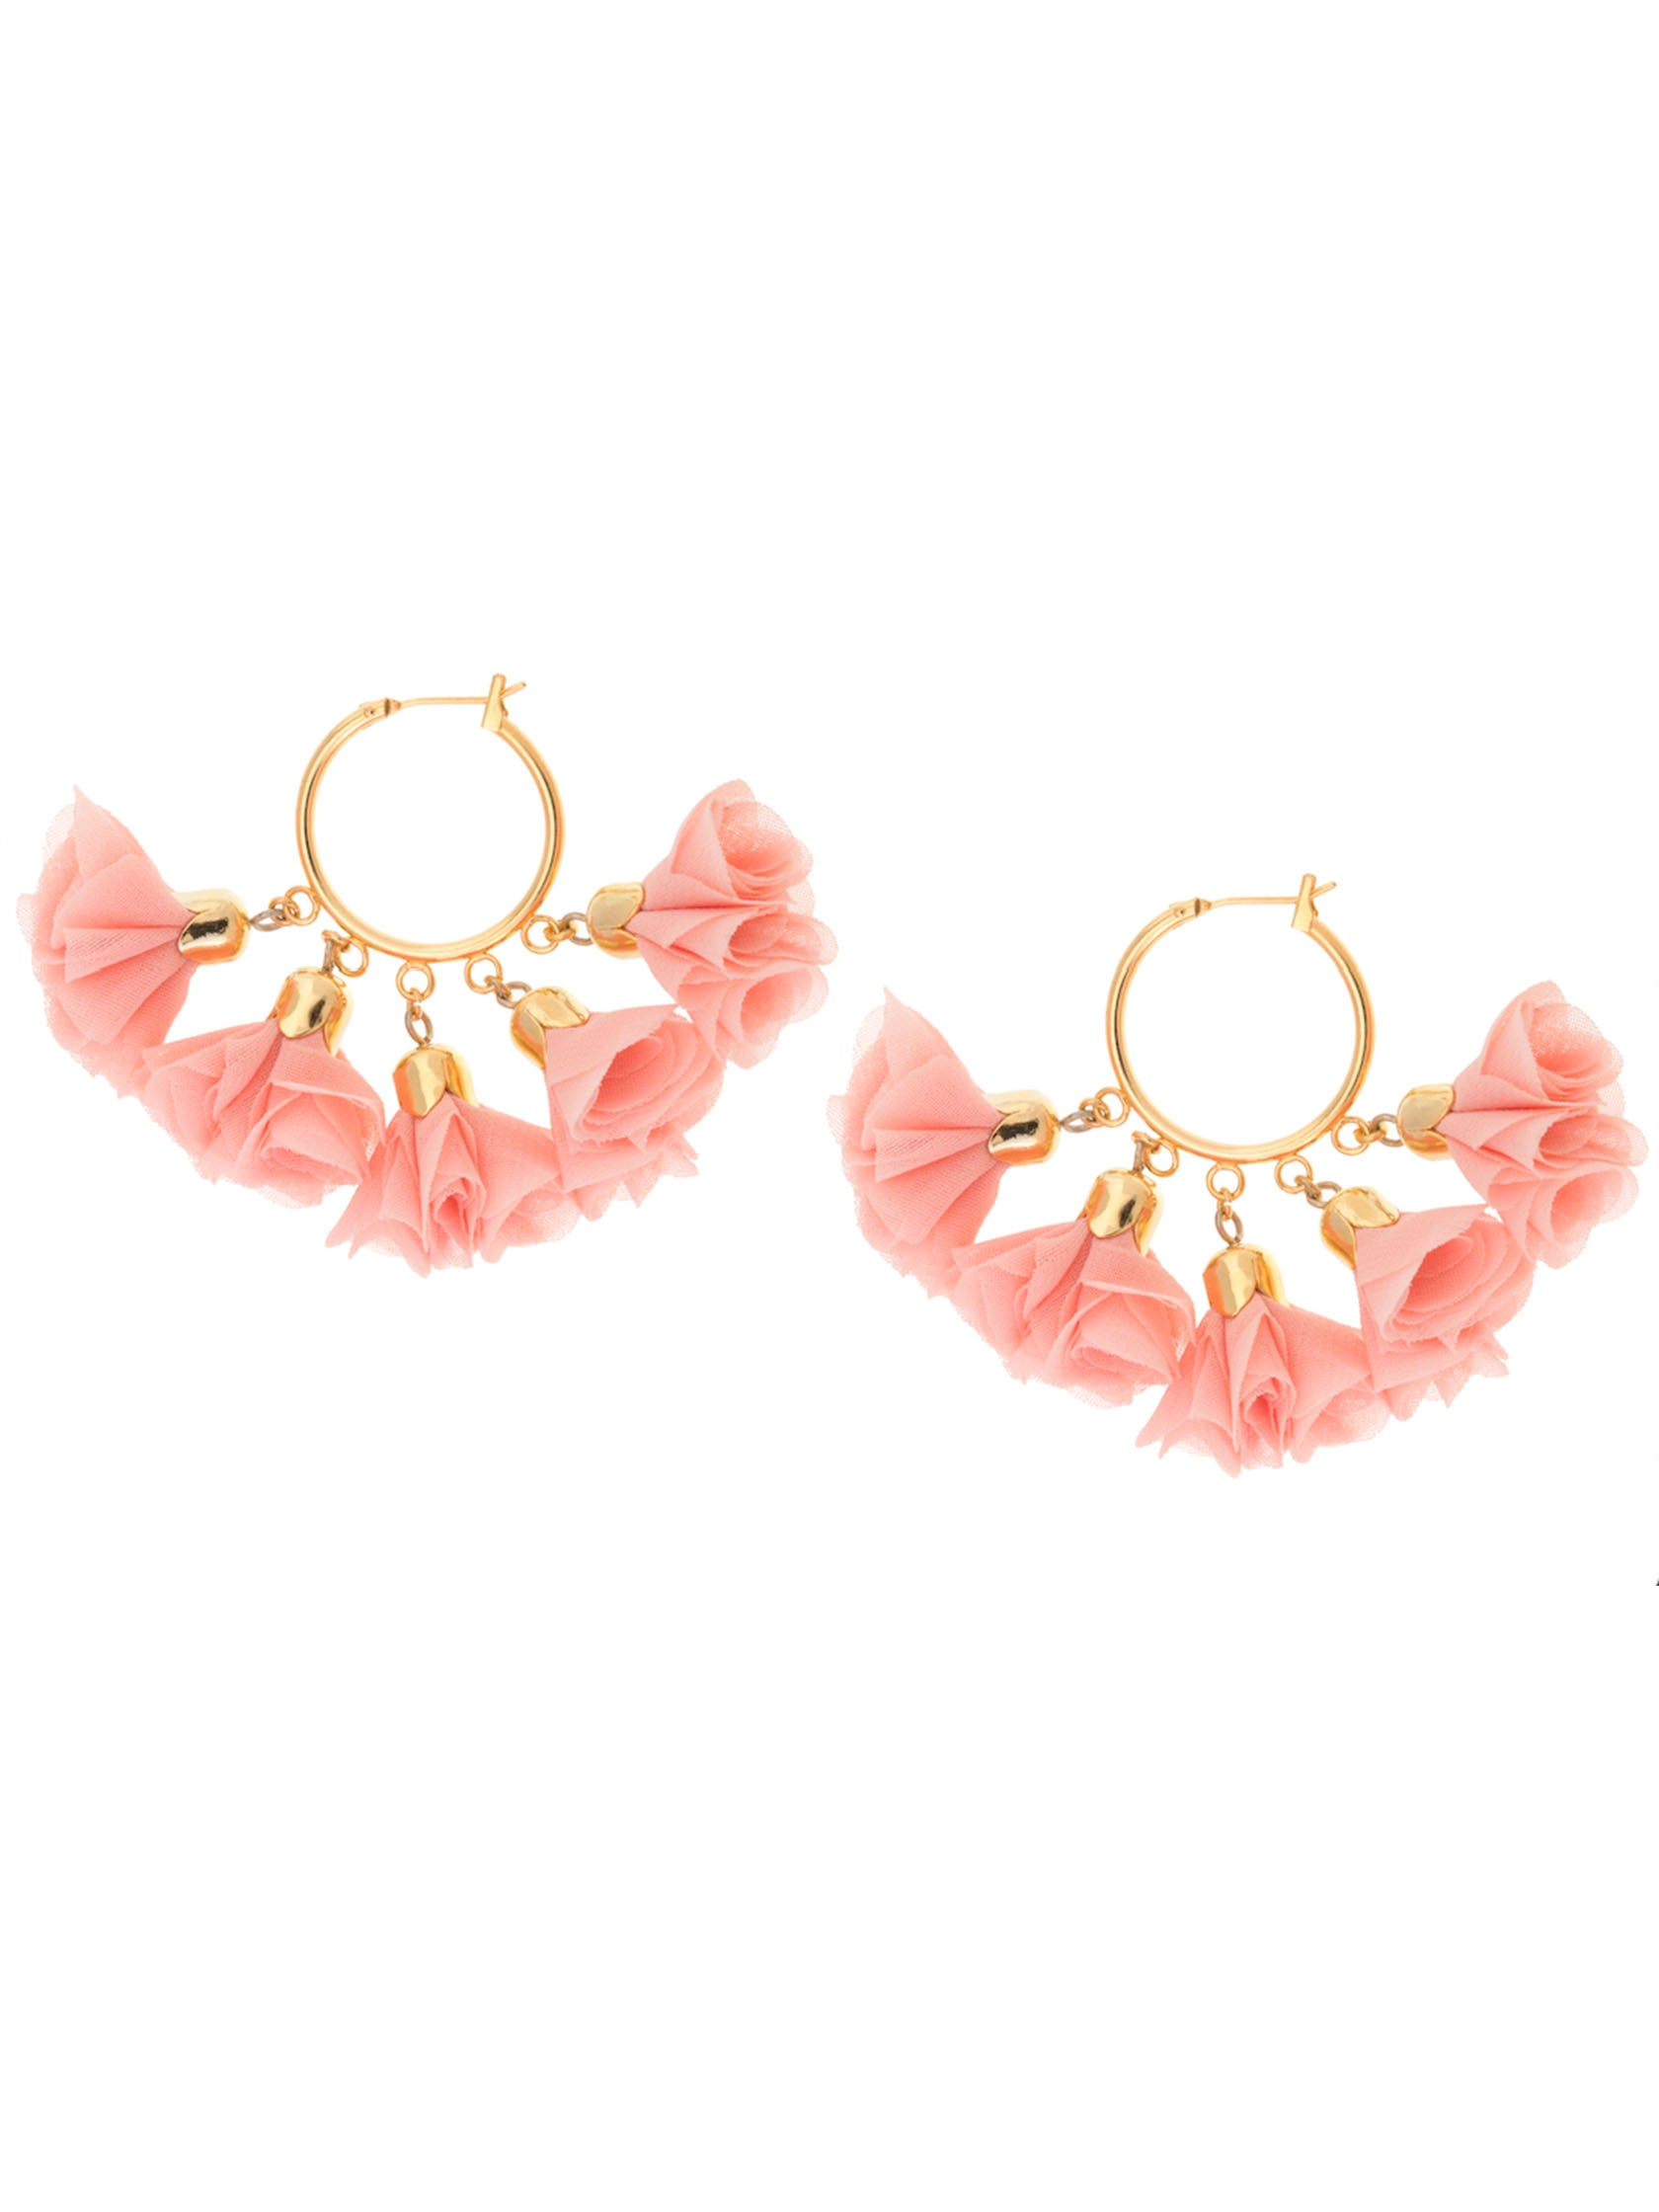 Women outfit in a earrings rental from Shashi called Flower Small Hoop Earrings